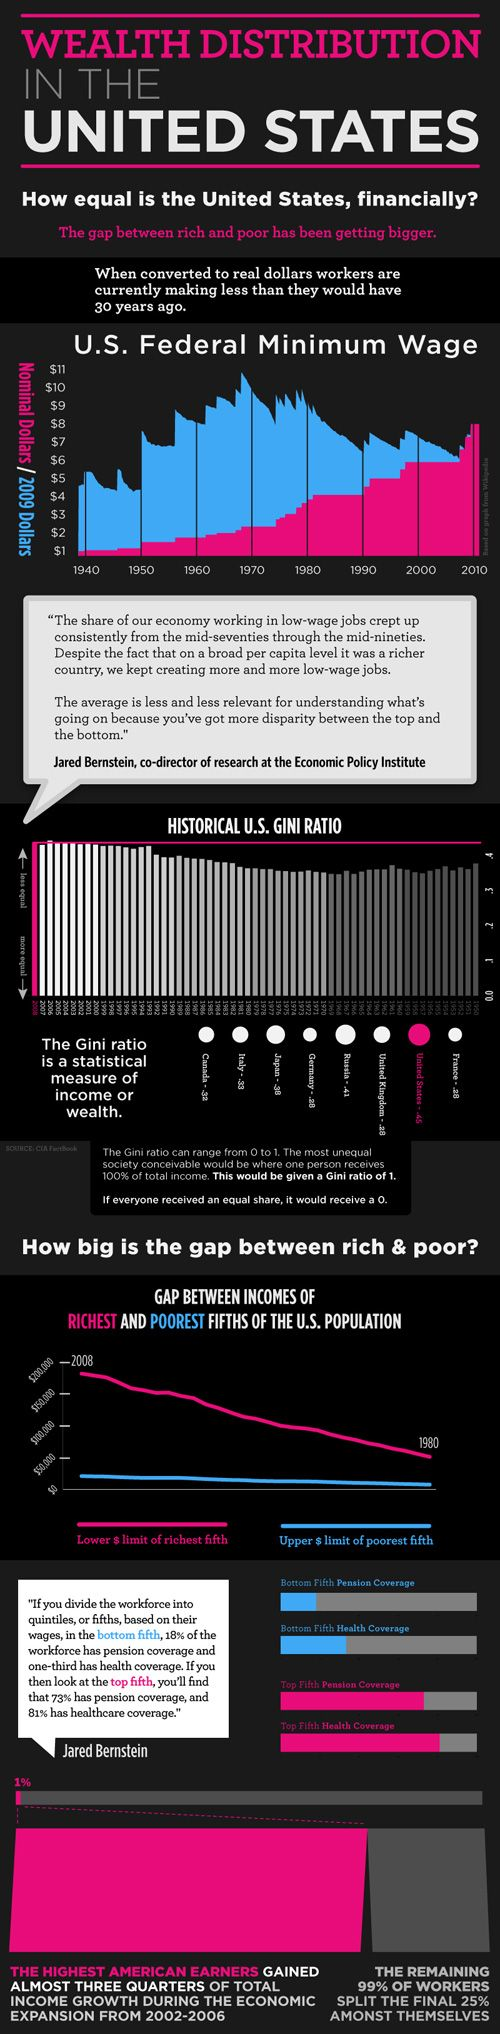 Wealth Distribution in the United States